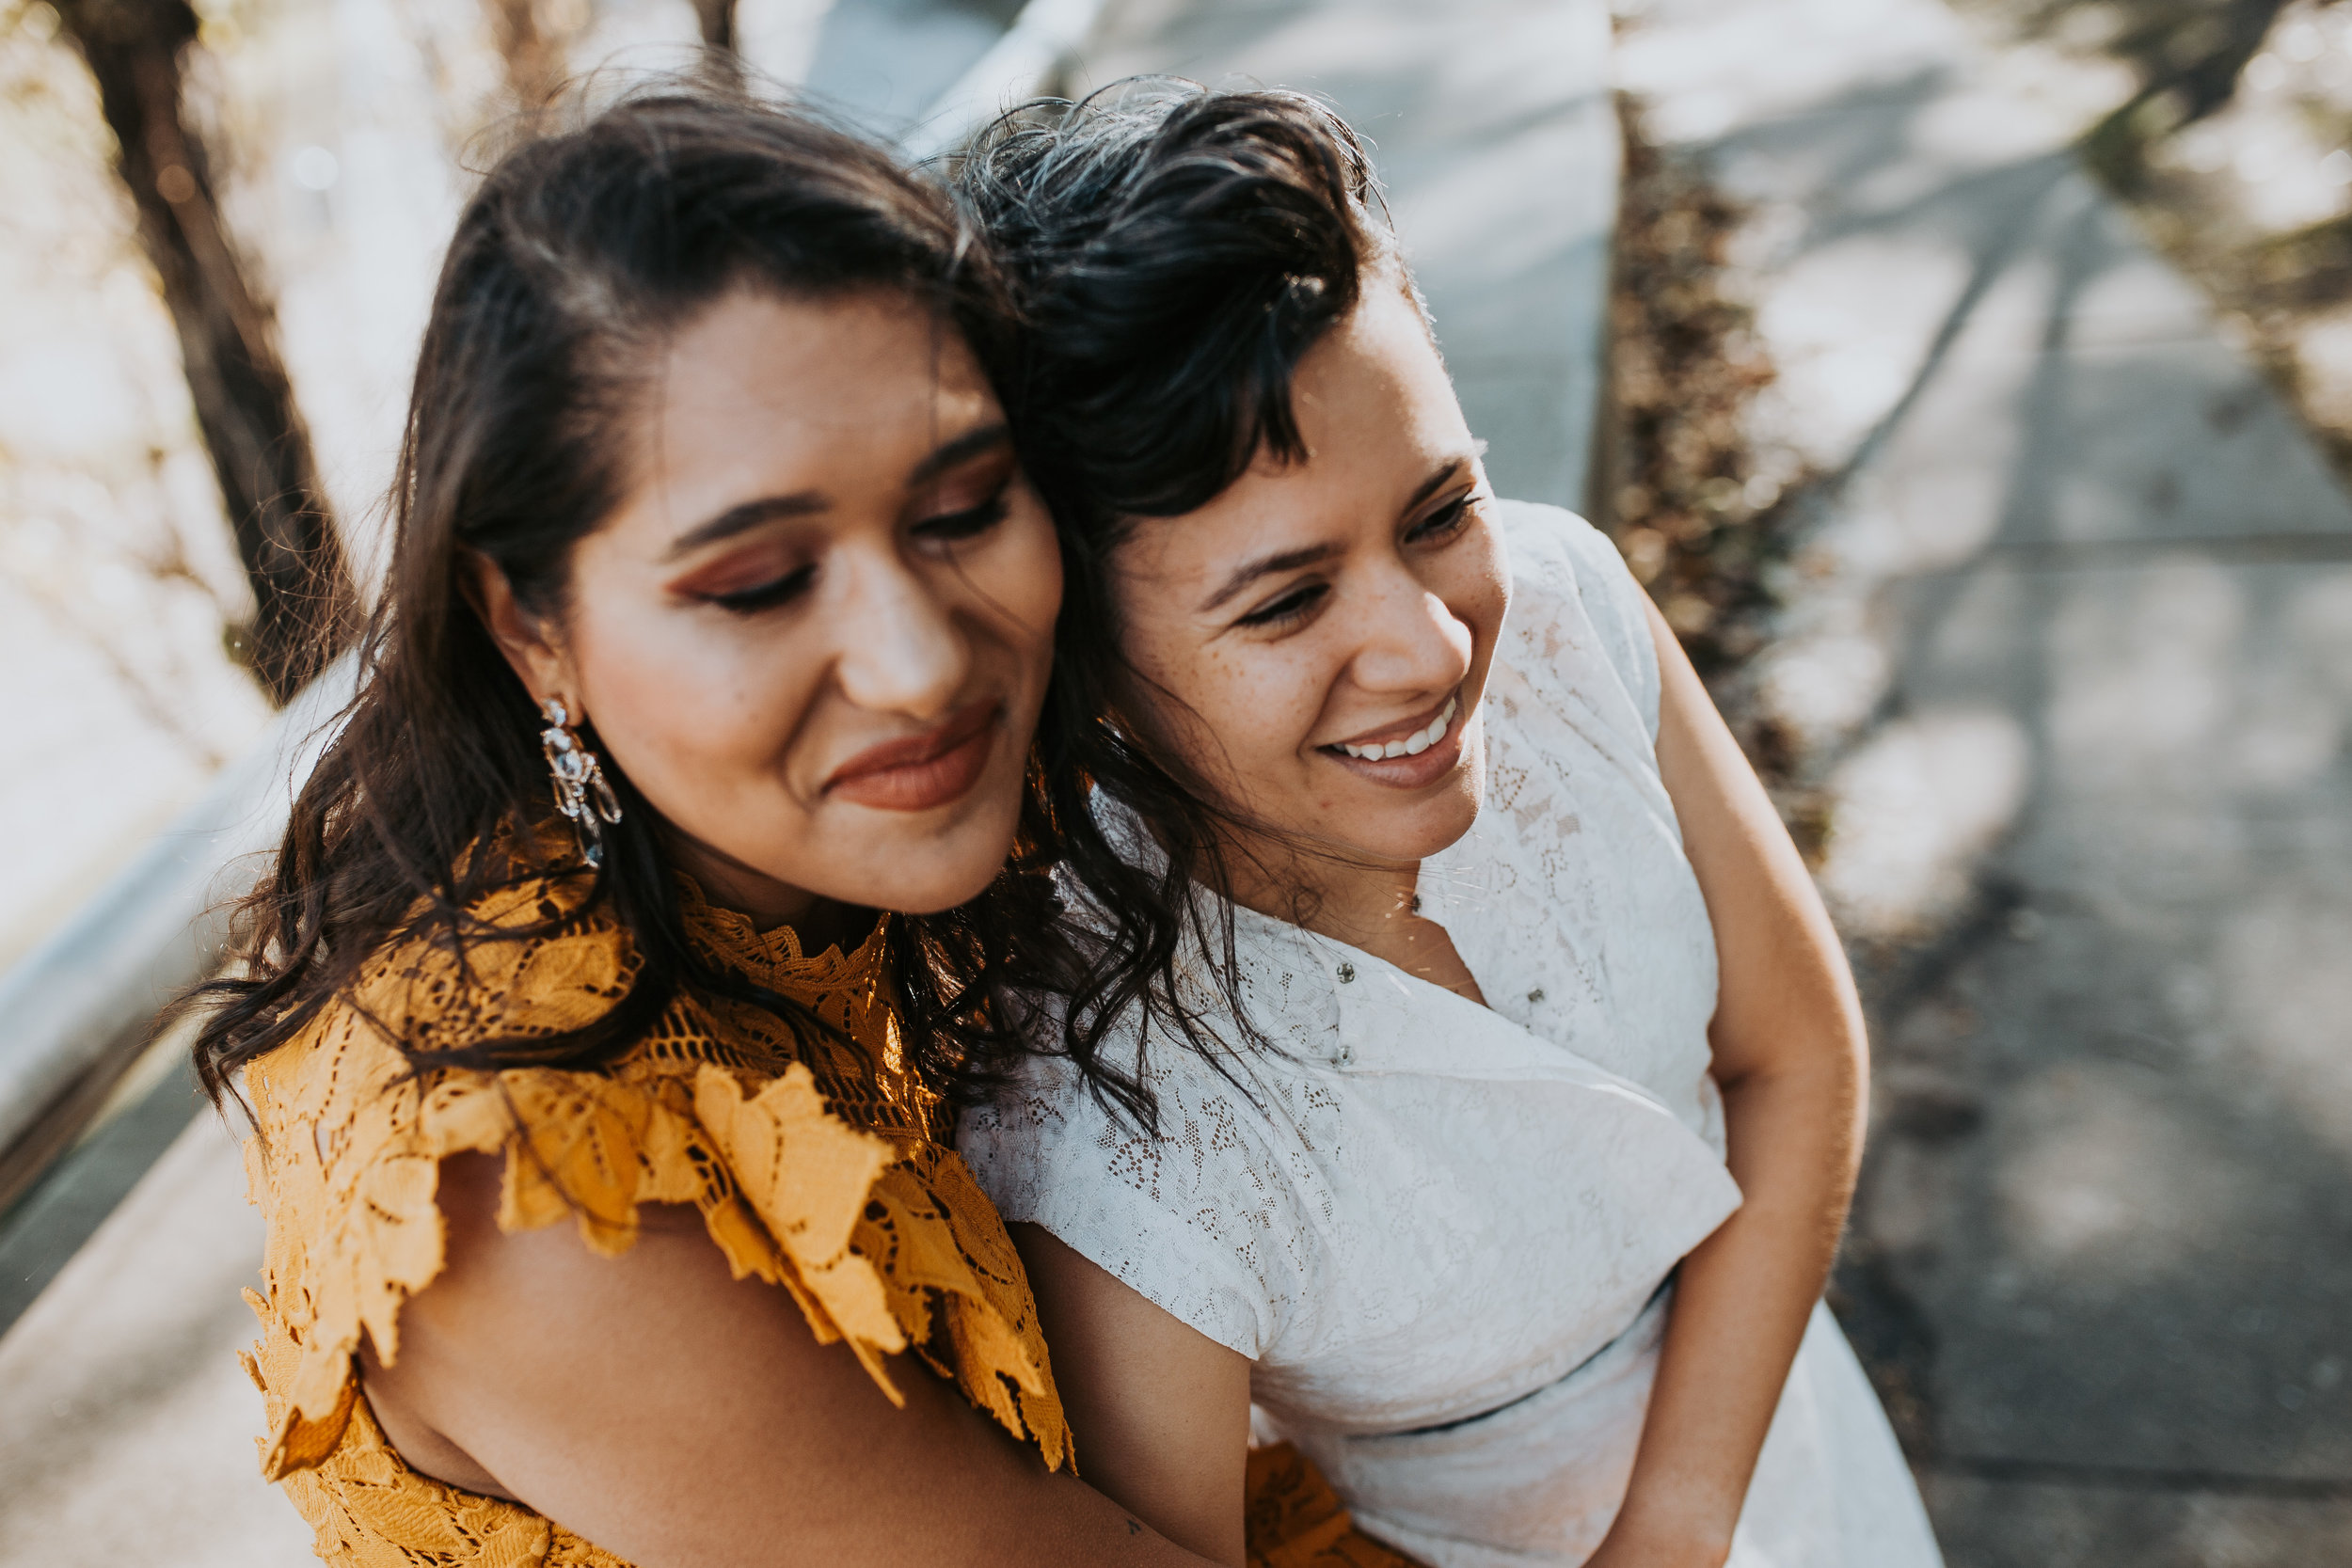 Shannen&Nadia_Buenos Aires_19June2019_(c)FeliciaLimPhotography_10.jpg